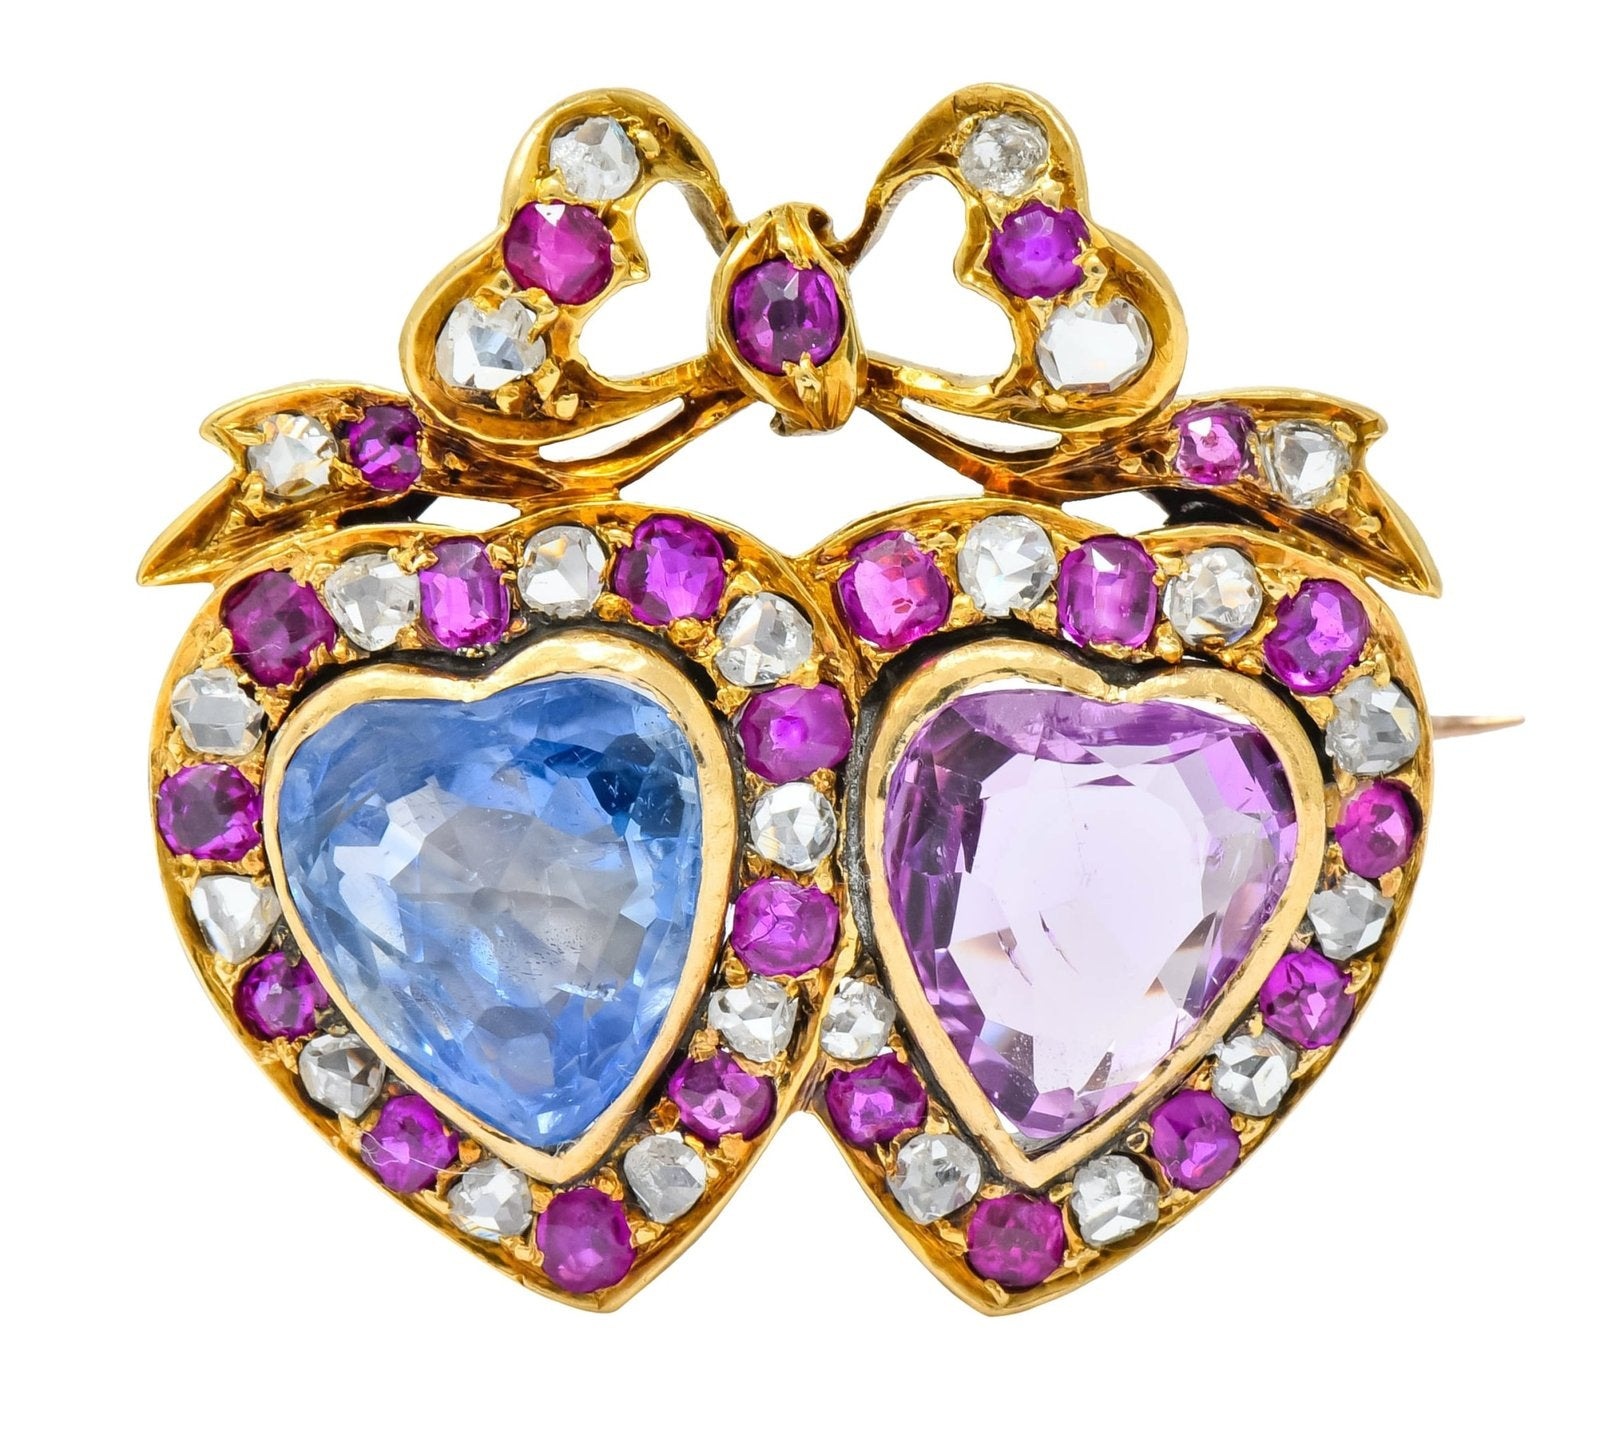 Victorian Double Heart Brooch Sapphire Ruby Diamond Heart Halo